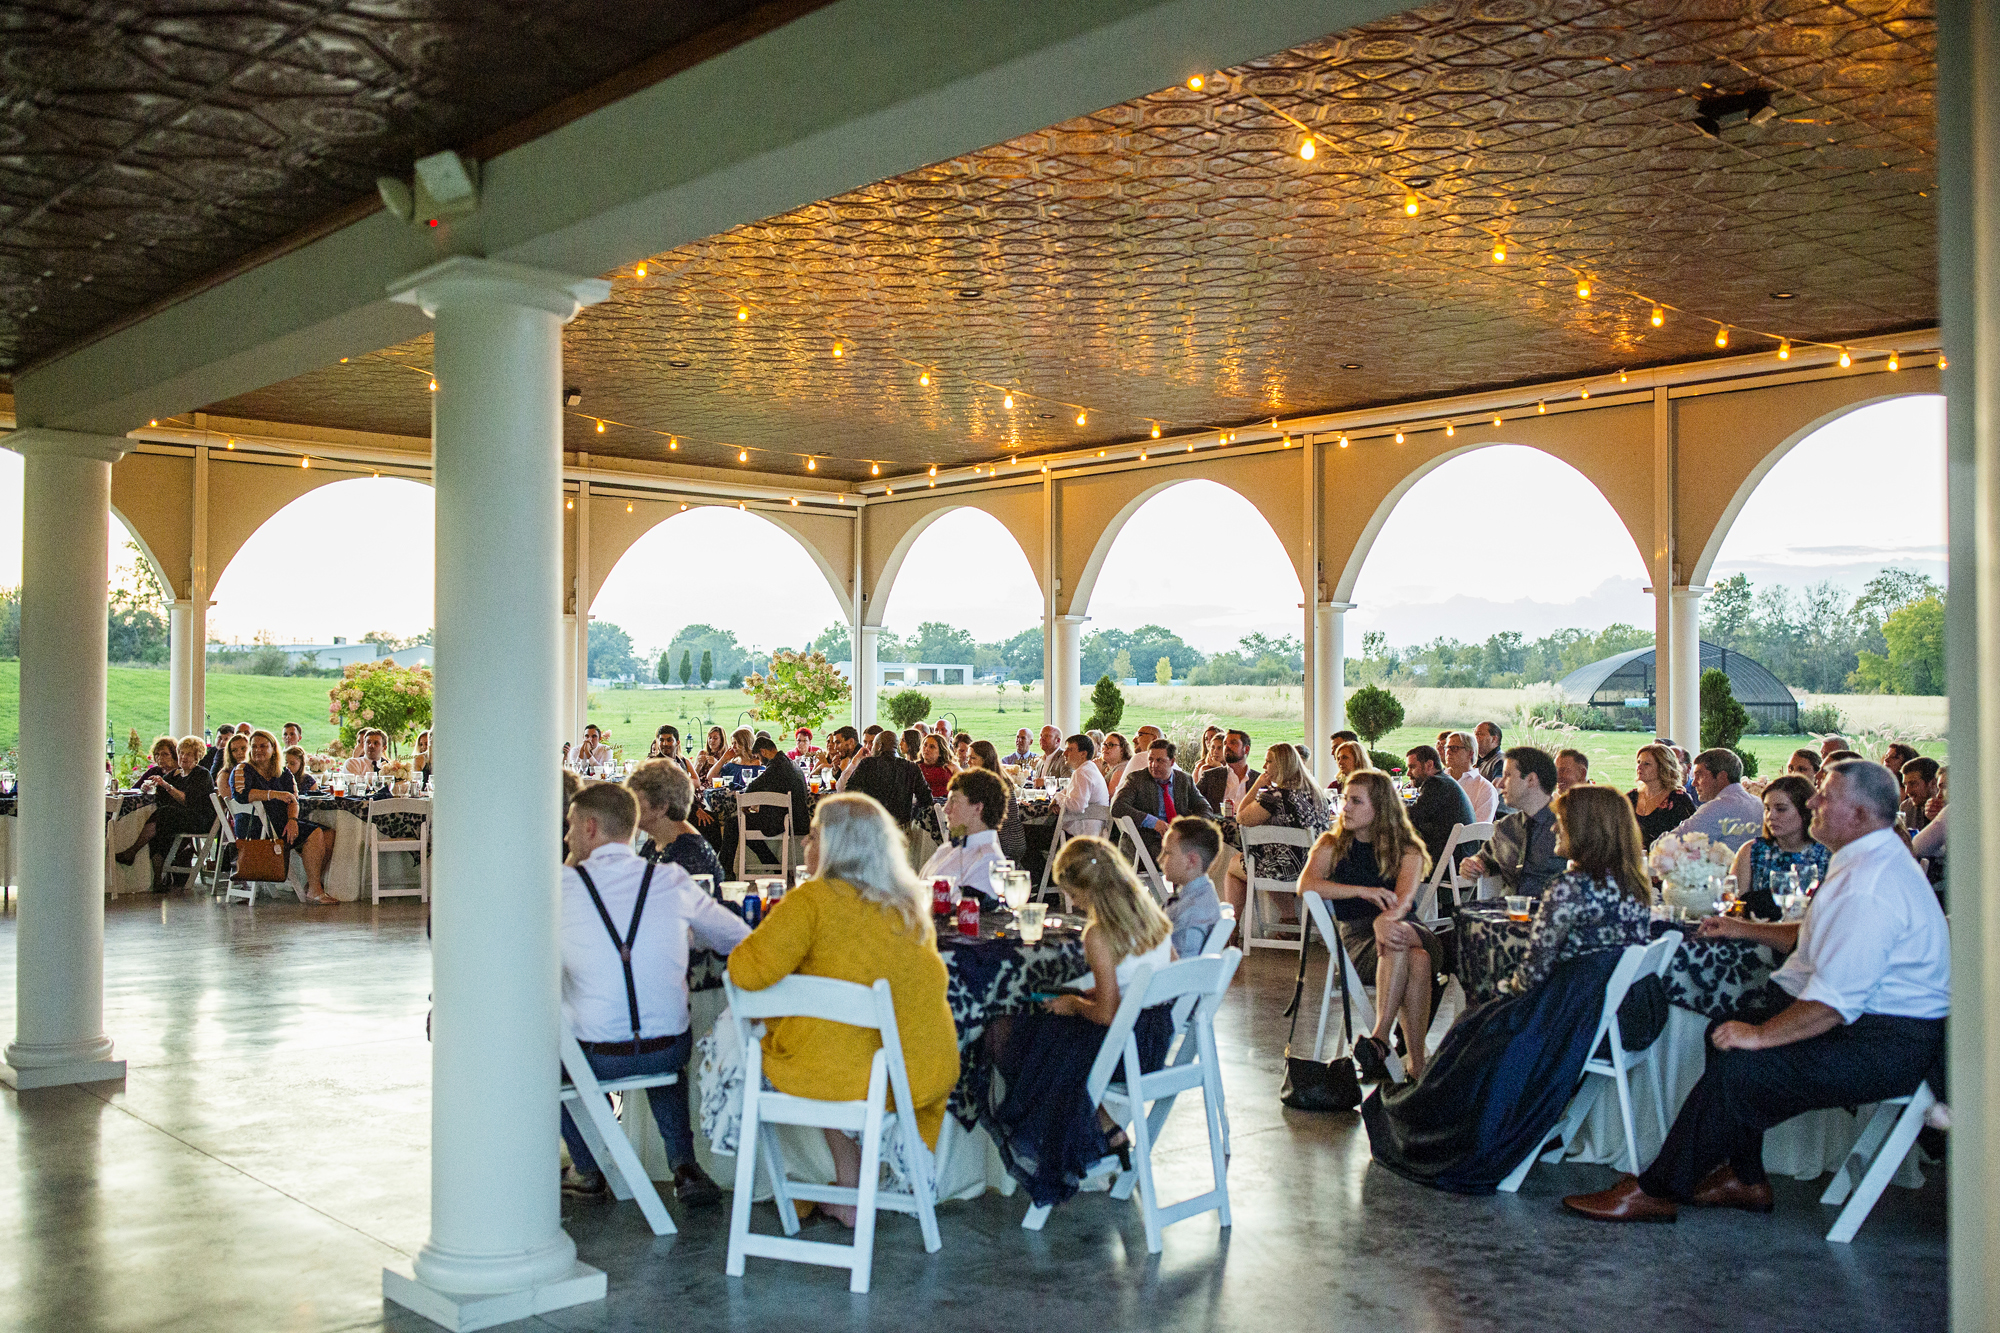 Seriously_Sabrina_Photography_Dayton_Ohio_Great_Gatsby_Wedding_Cedar_Springs_Pavillion_Harper_109.jpg